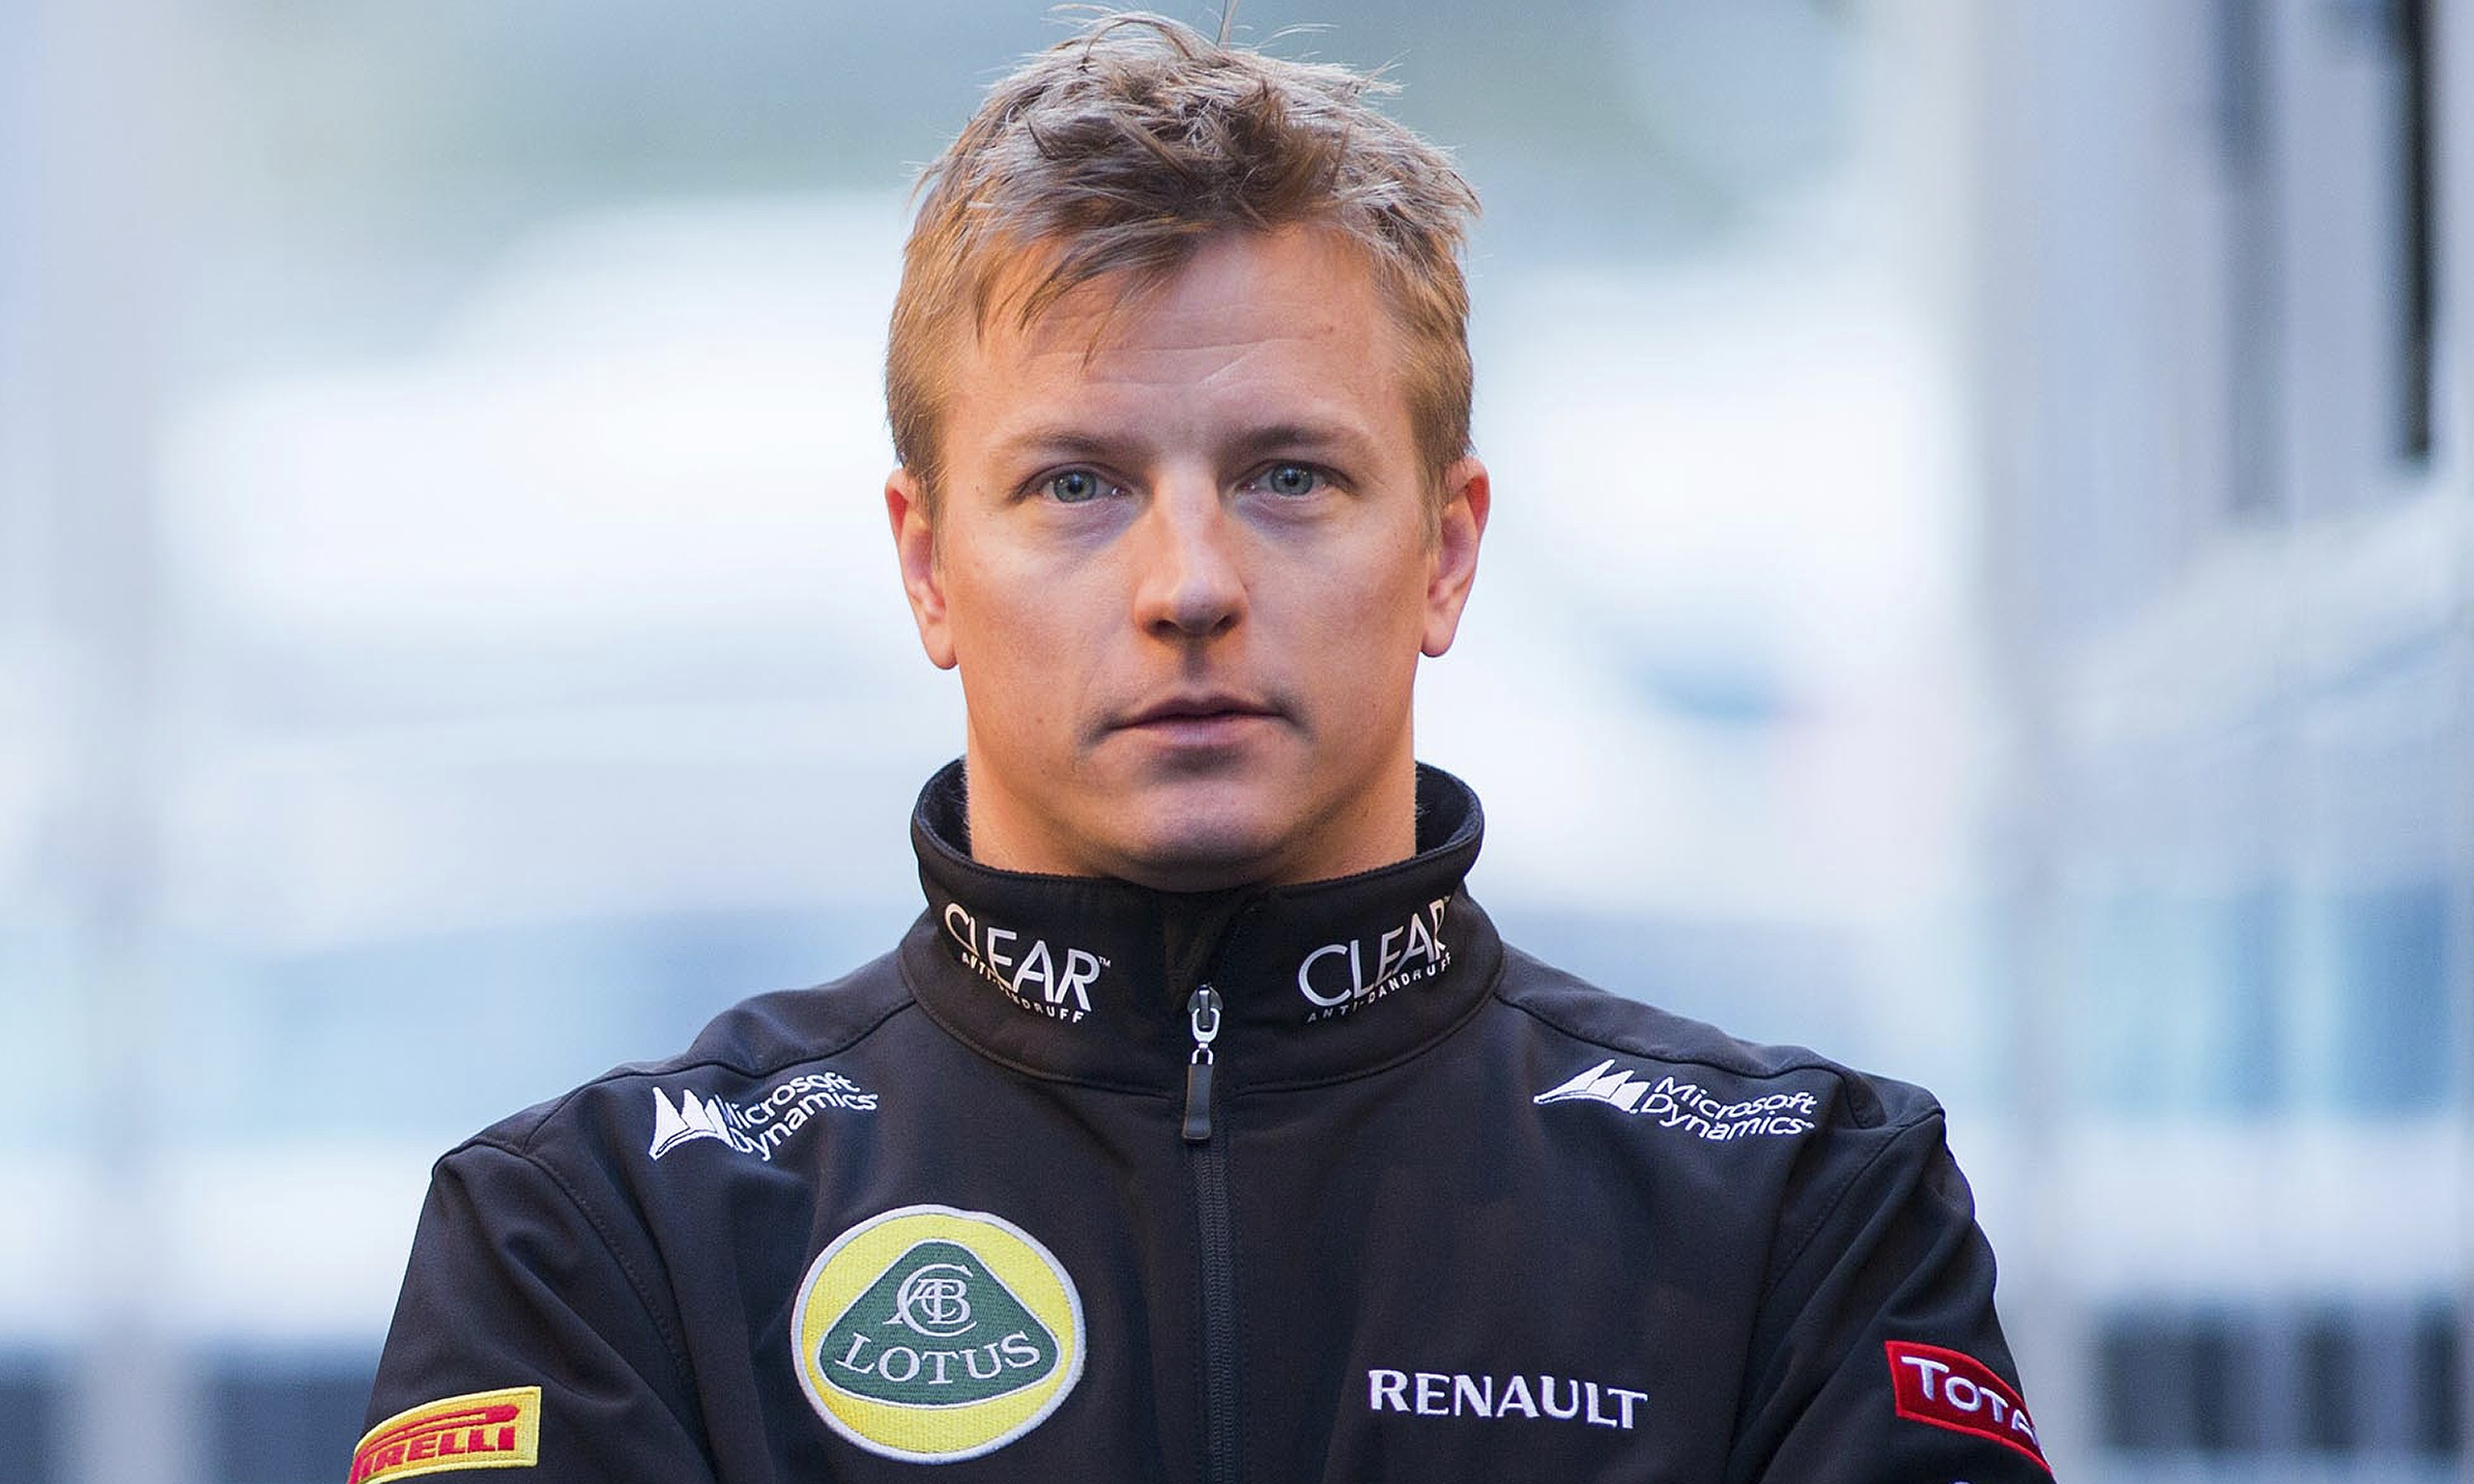 Kimi Raikkonen earned a 26 million dollar salary - leaving the net worth at 110 million in 2018